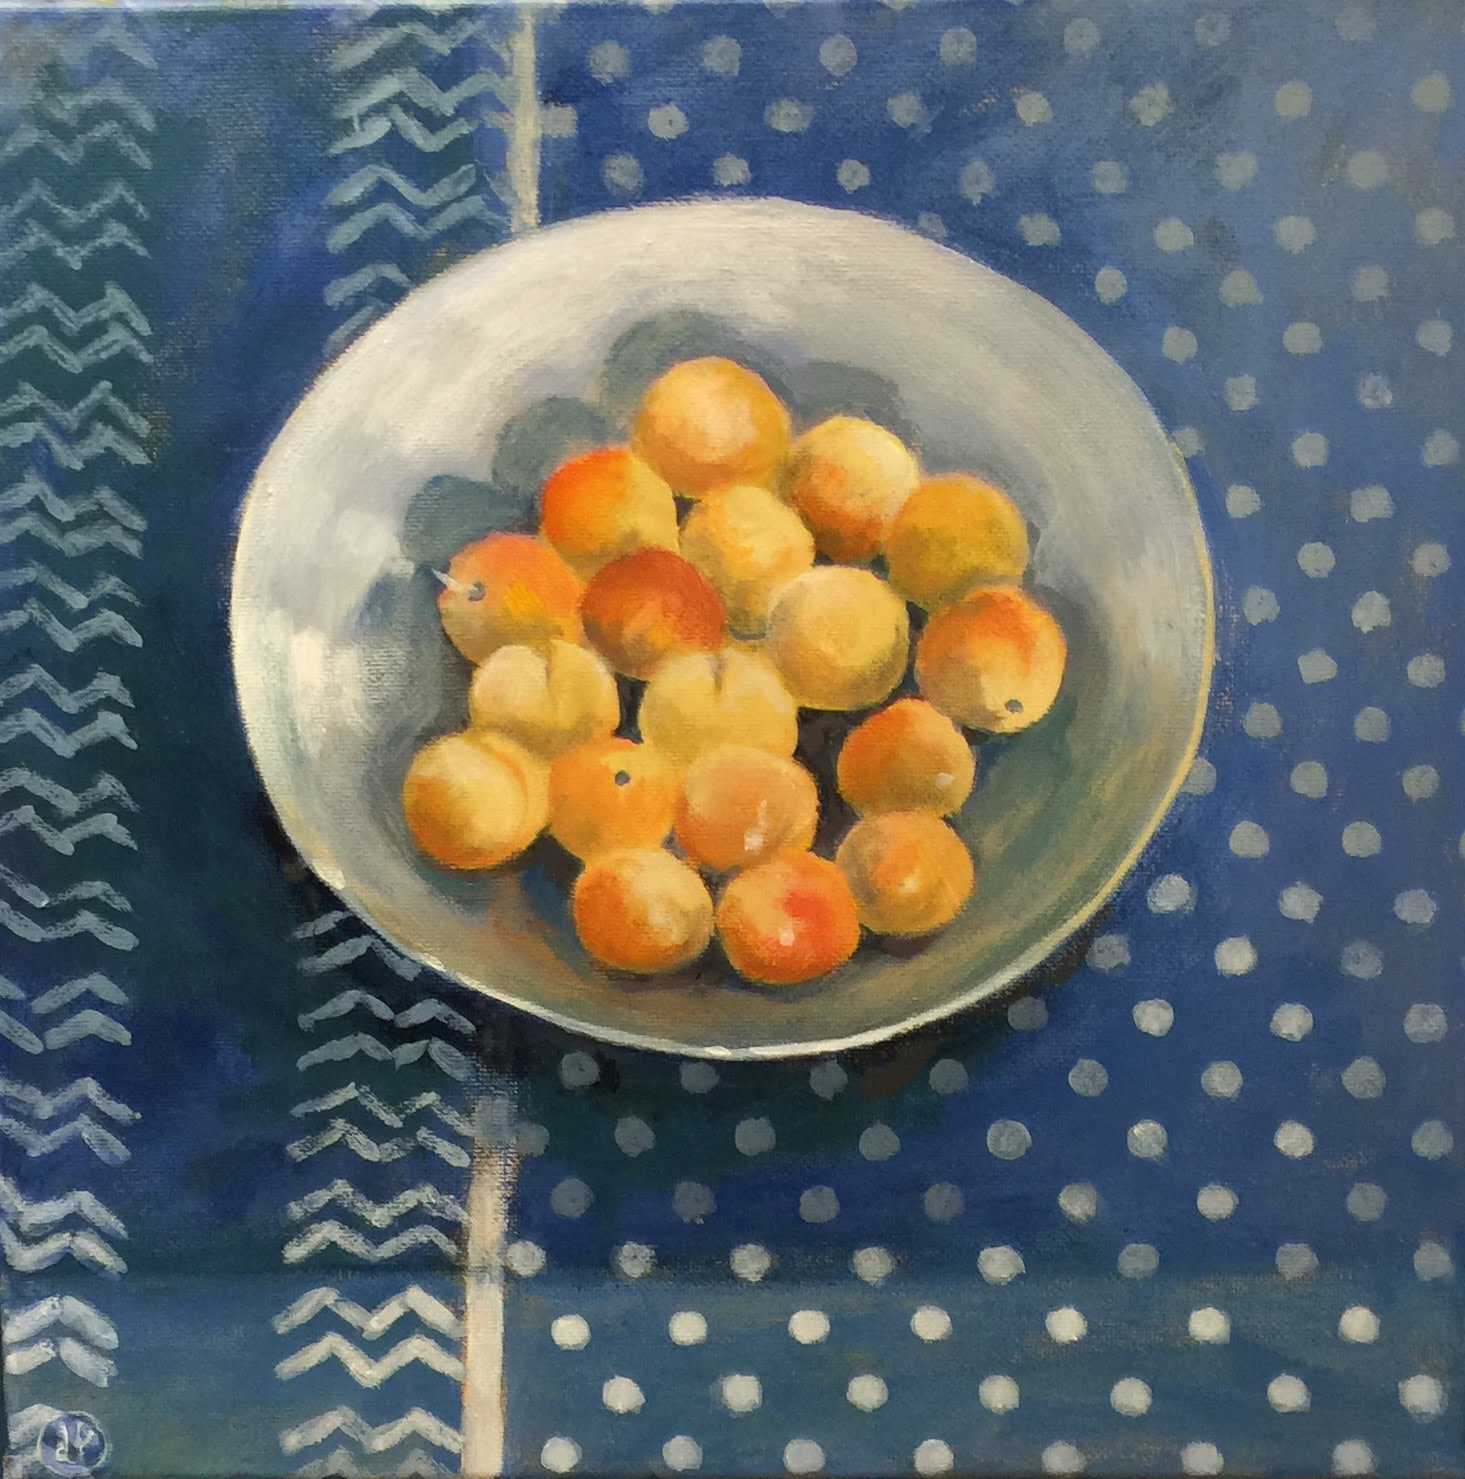 <span class=&#34;link fancybox-details-link&#34;><a href=&#34;/artists/34-joyce-pinch/works/1639-joyce-pinch-charmeneuil-plums/&#34;>View Detail Page</a></span><div class=&#34;artist&#34;><strong>Joyce Pinch</strong></div> <div class=&#34;title&#34;><em>Charmeneuil Plums</em></div> <div class=&#34;medium&#34;>Acrylic on Canvas (framed)</div> <div class=&#34;dimensions&#34;>30 x 30 cm</div><div class=&#34;price&#34;>£300.00</div><div class=&#34;copyright_line&#34;>Copyright The Artist</div>